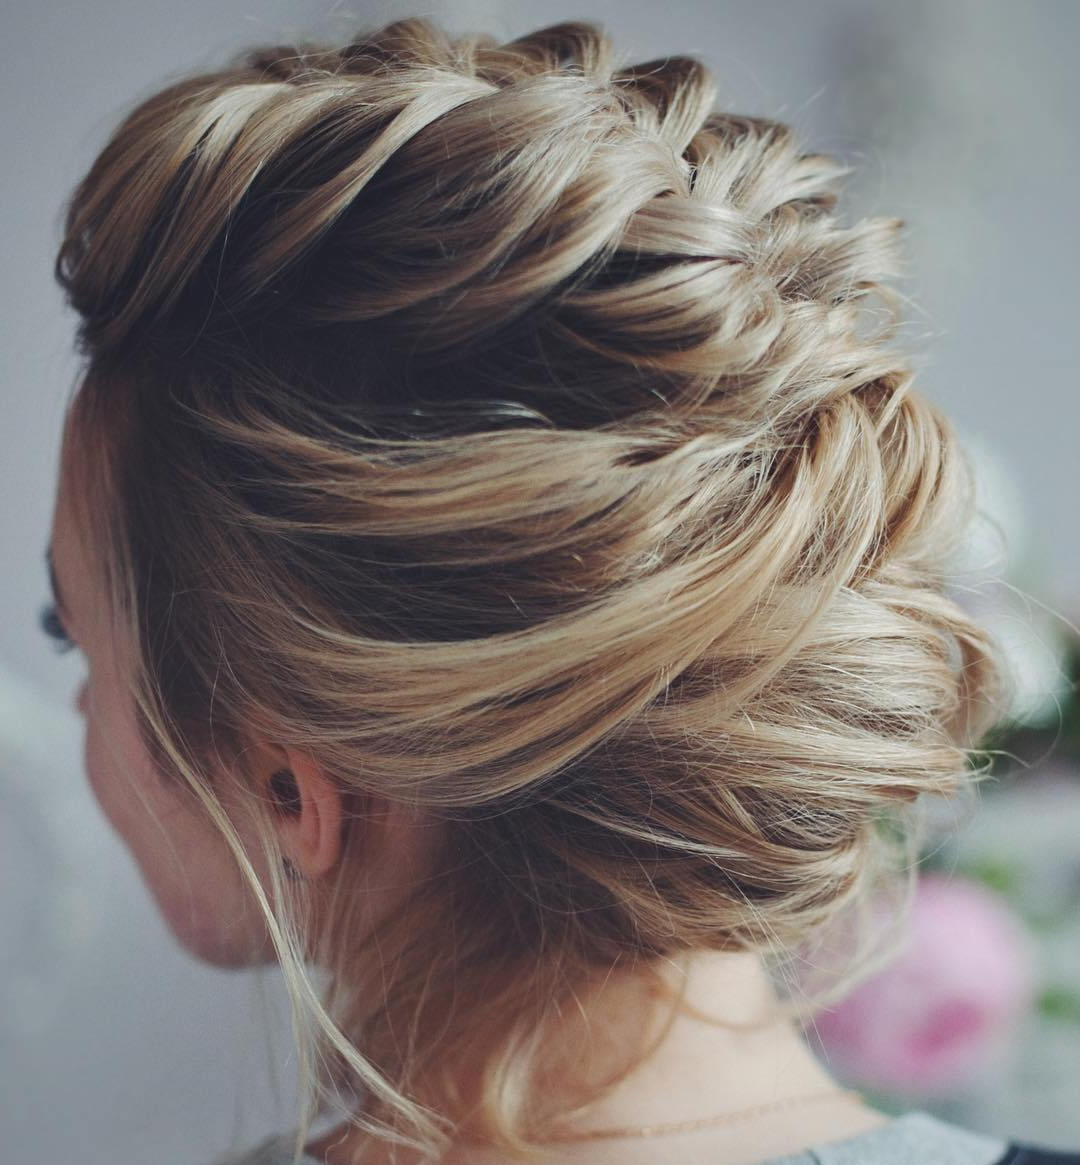 50 Hottest Prom Hairstyles For Short Hair With Homecoming Short Hairstyles (View 11 of 25)